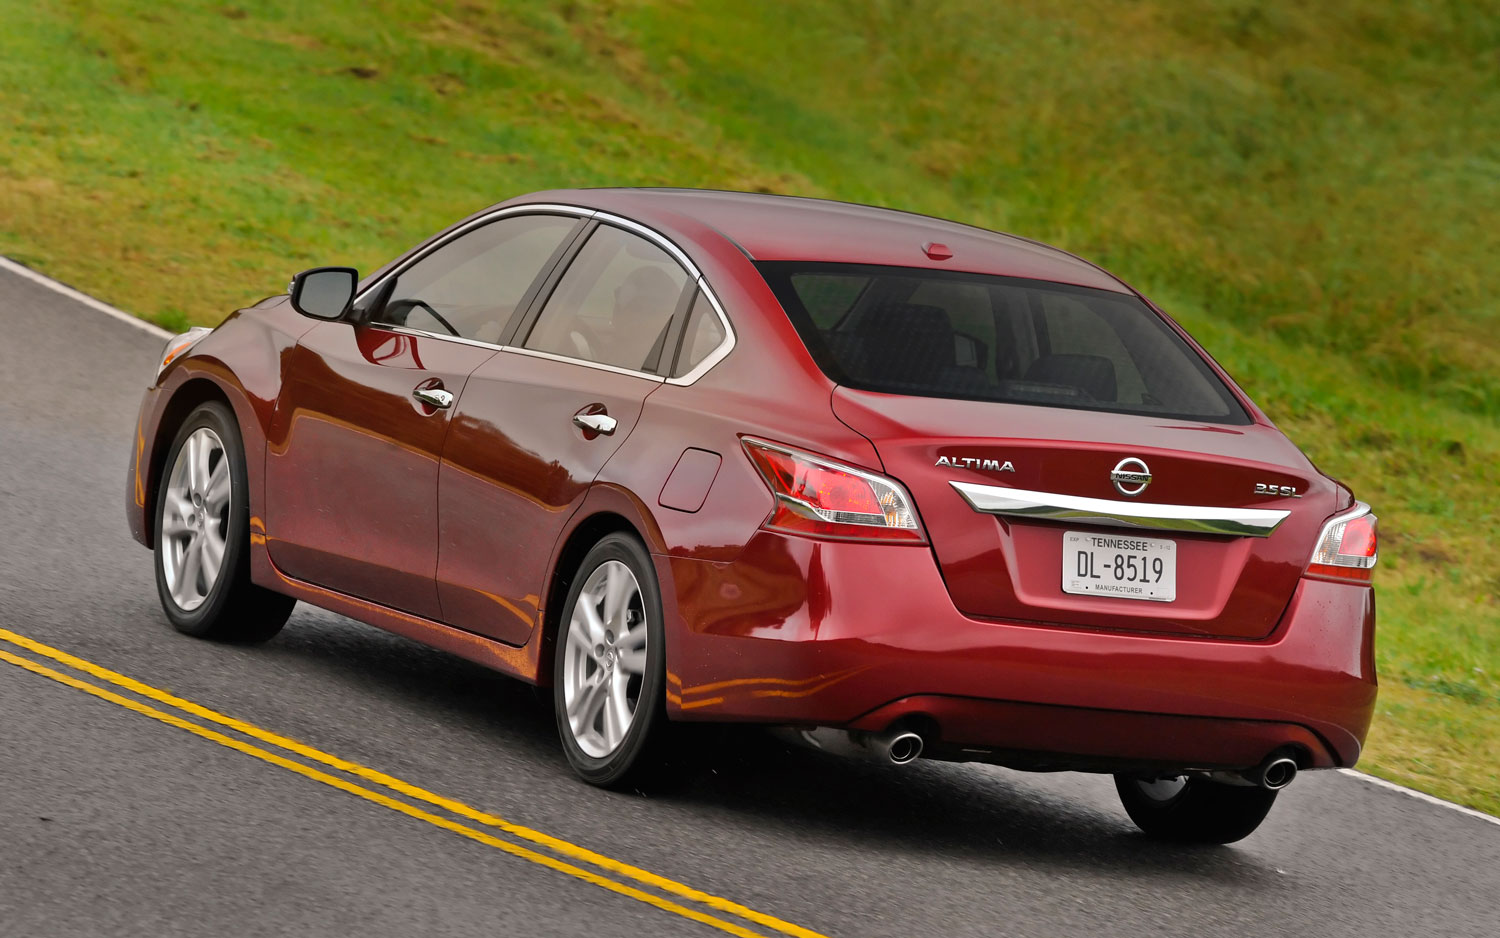 show wallpaper york altima motor pin auto awesome new look download hd feelgrafix first trend free com nissan